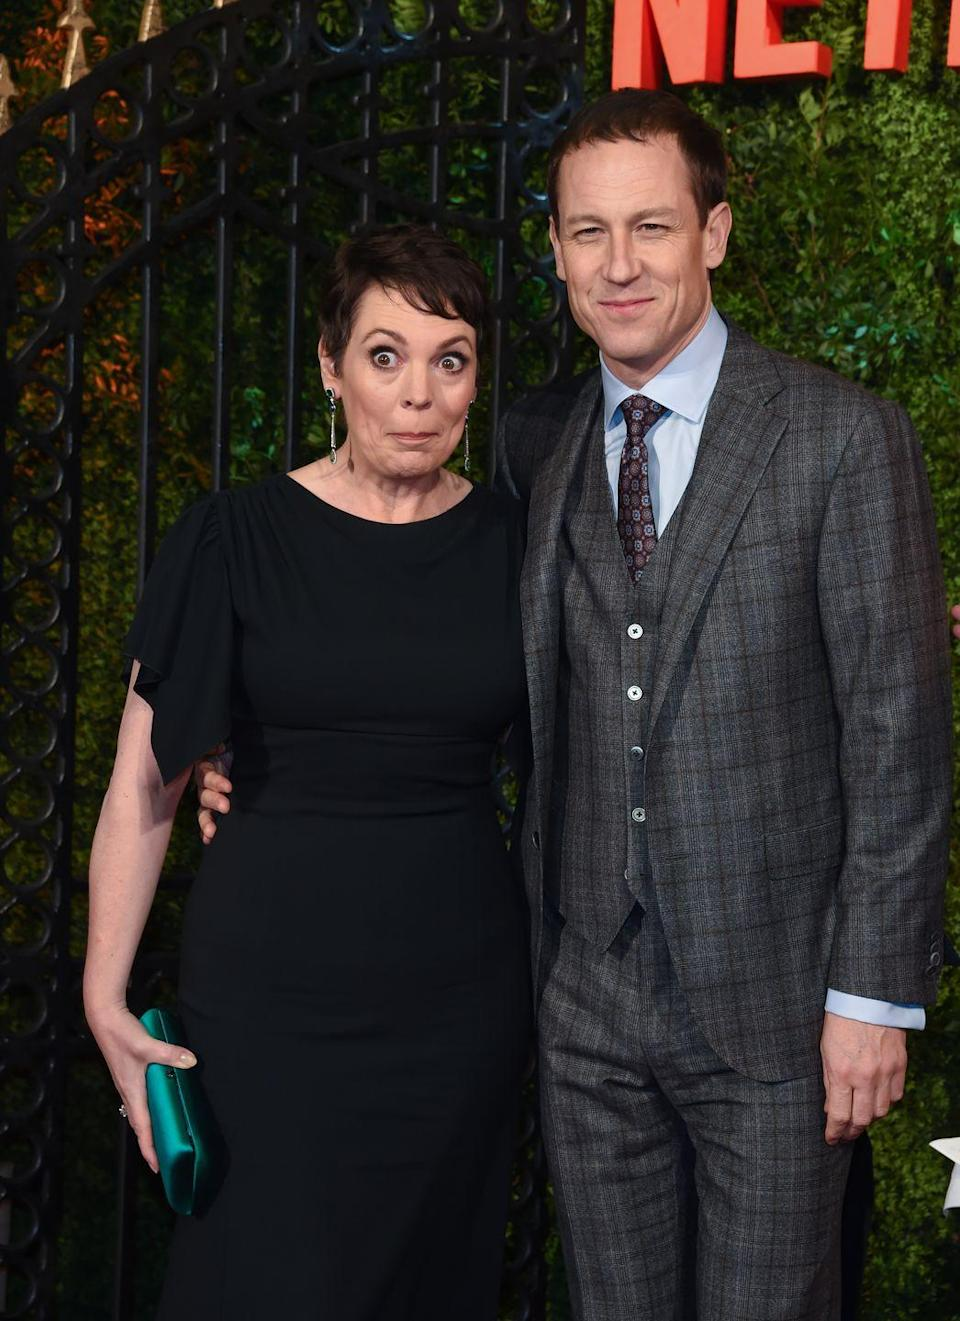 """<p>In an interview with <a href=""""https://www.vanityfair.com/hollywood/2020/09/the-crowns-charles-and-diana-exclusive-visit"""" rel=""""nofollow noopener"""" target=""""_blank"""" data-ylk=""""slk:Vanity Fair"""" class=""""link rapid-noclick-resp""""><em>Vanity Fair</em></a>, the show's creator, Peter Morgan, opened up about how the COVID-19 pandemic had affected Season 4 of <em>The Crown</em>. """"The truth is, yes, we are missing at least two weeks of filming,"""" he explained. """"I just hope you can't tell where.""""</p>"""